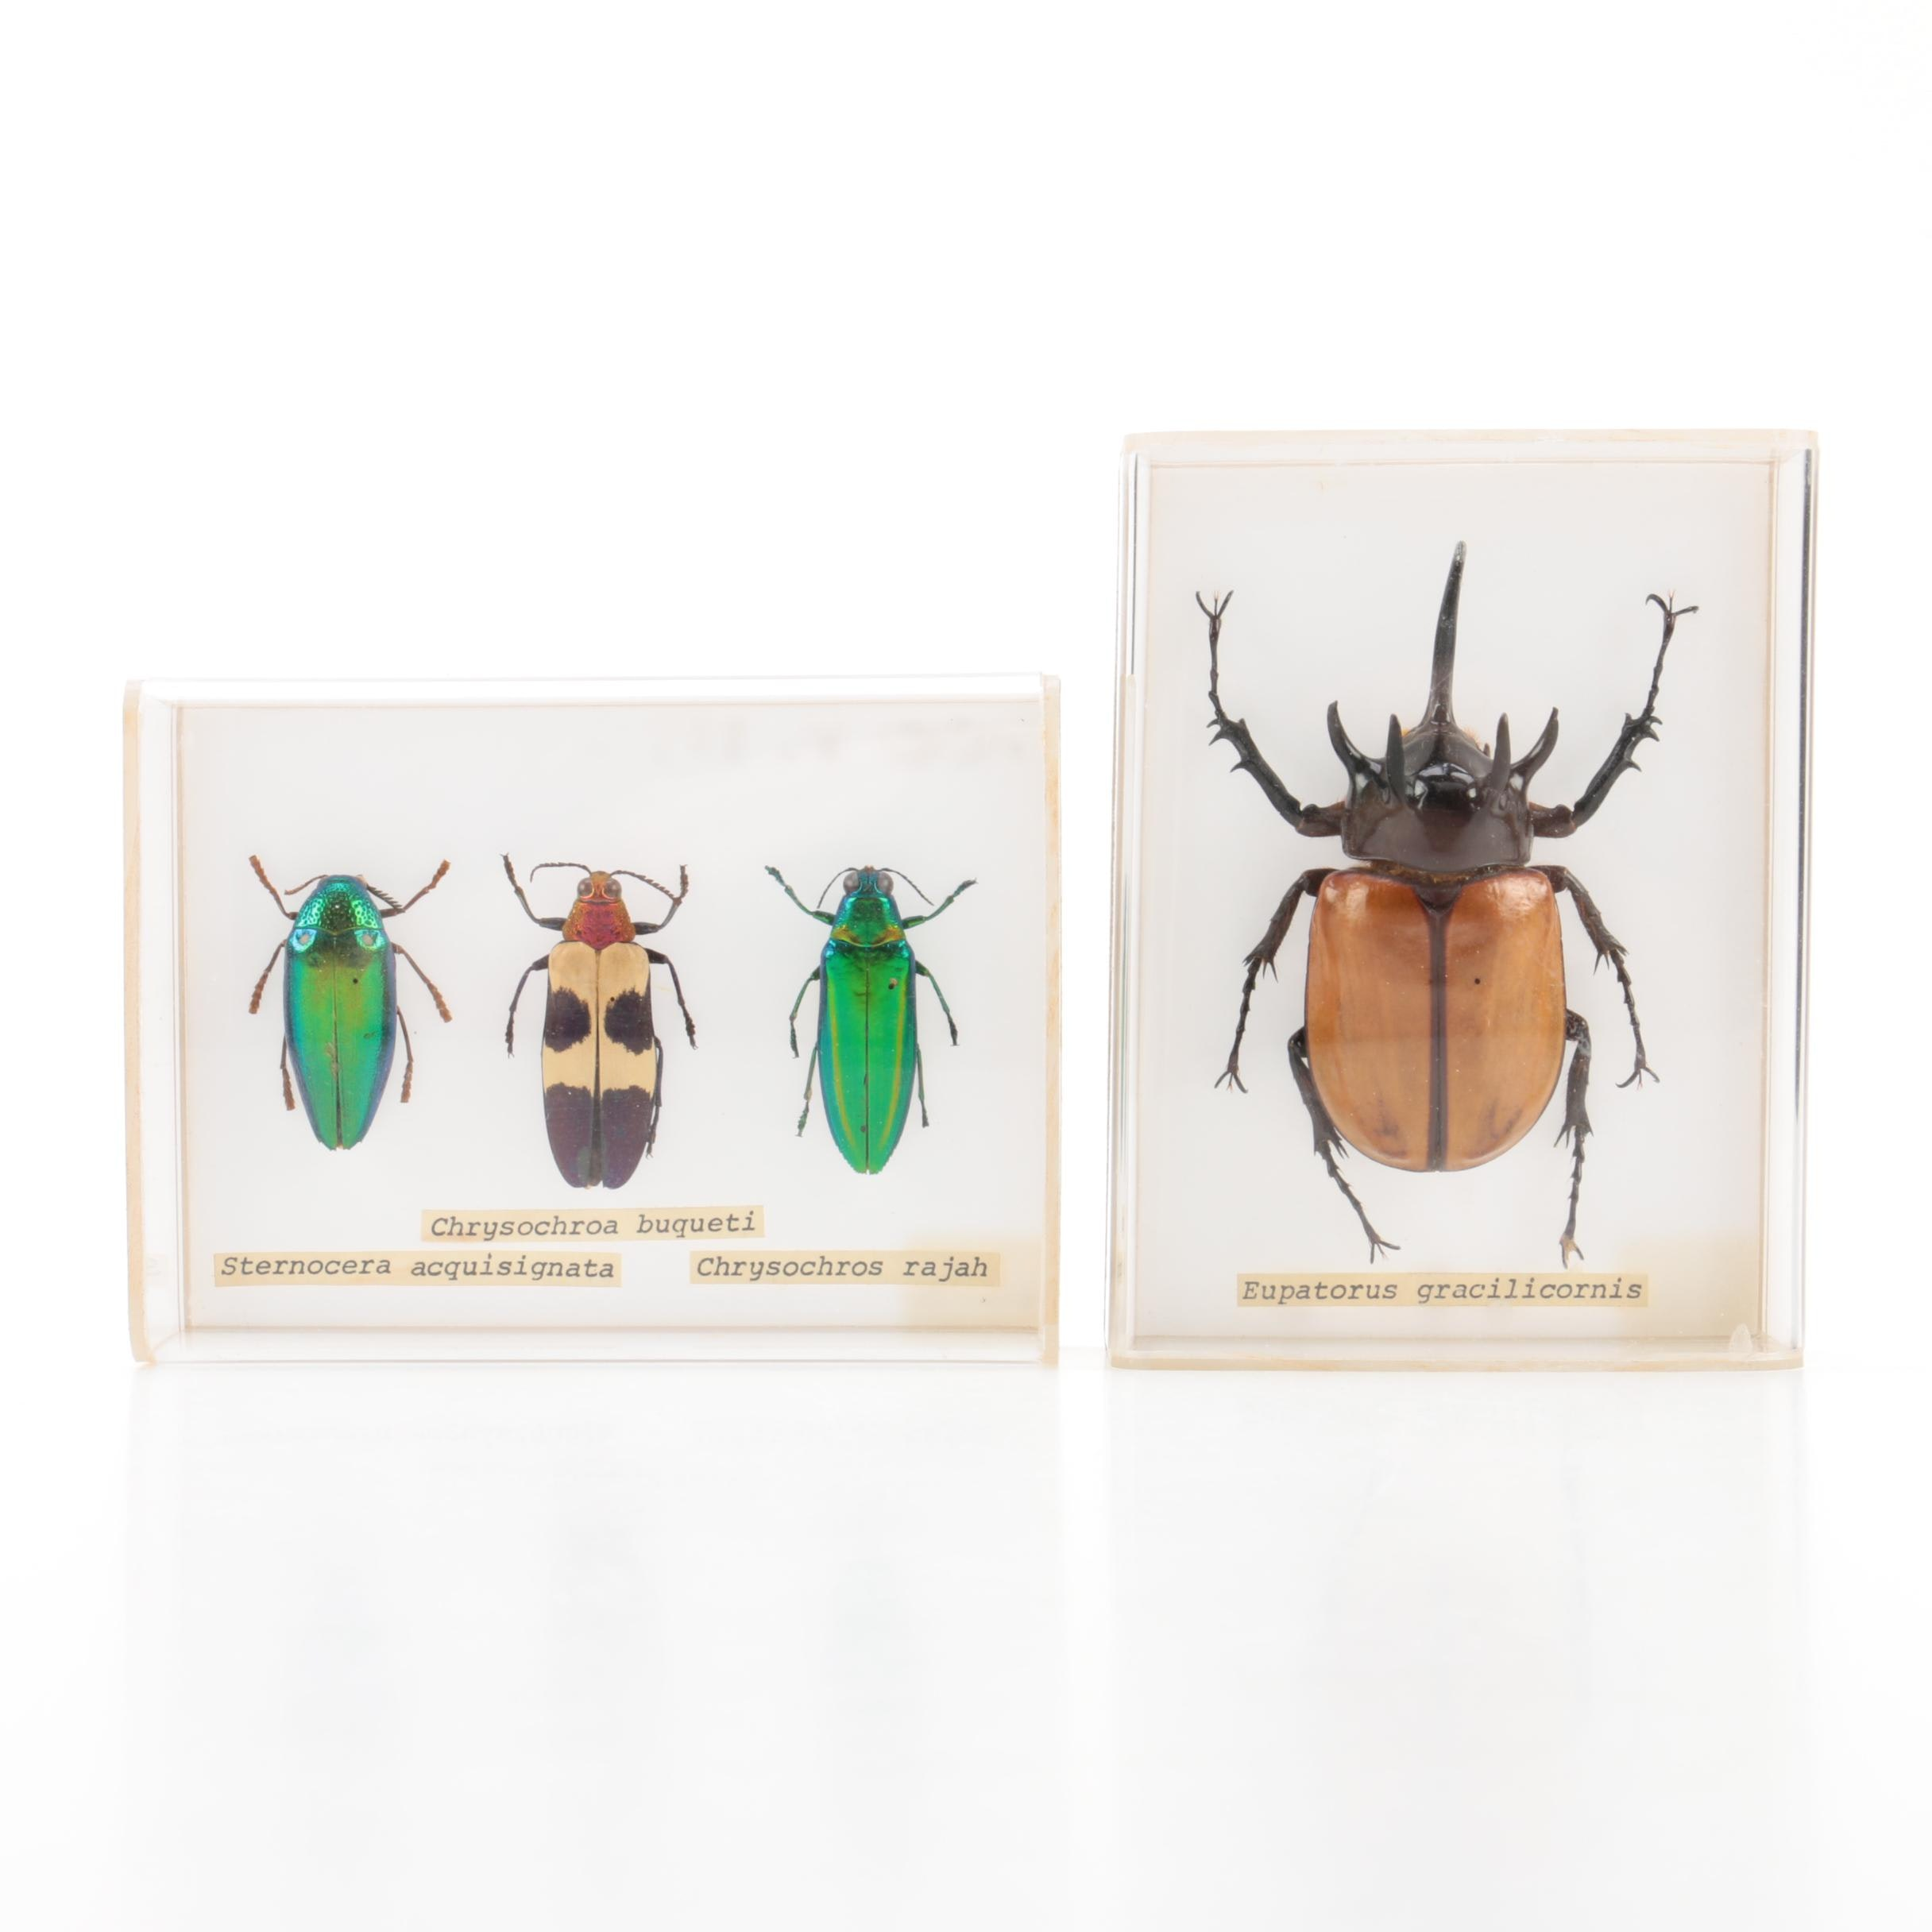 Recent Beetle Specimens